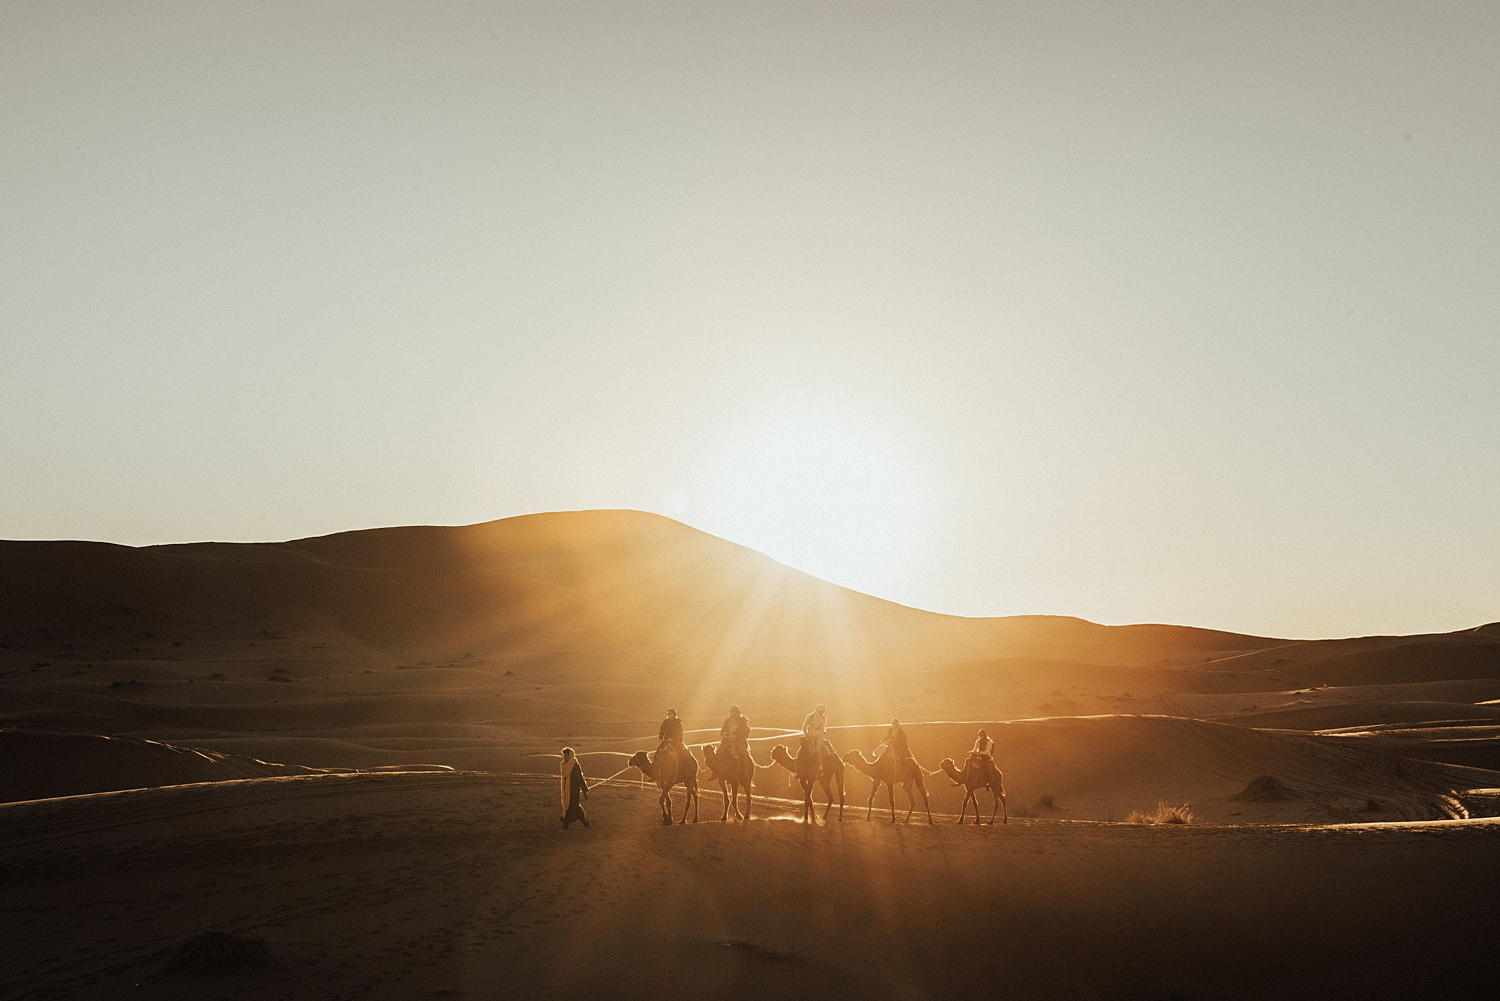 MOROCCO  Looking for something a bit more adventurous? Consider the Sahara! Sand boarding makes for a great post wedding day activity… Not to mention exploring ancient Arabic cities that date back to middle Ages.